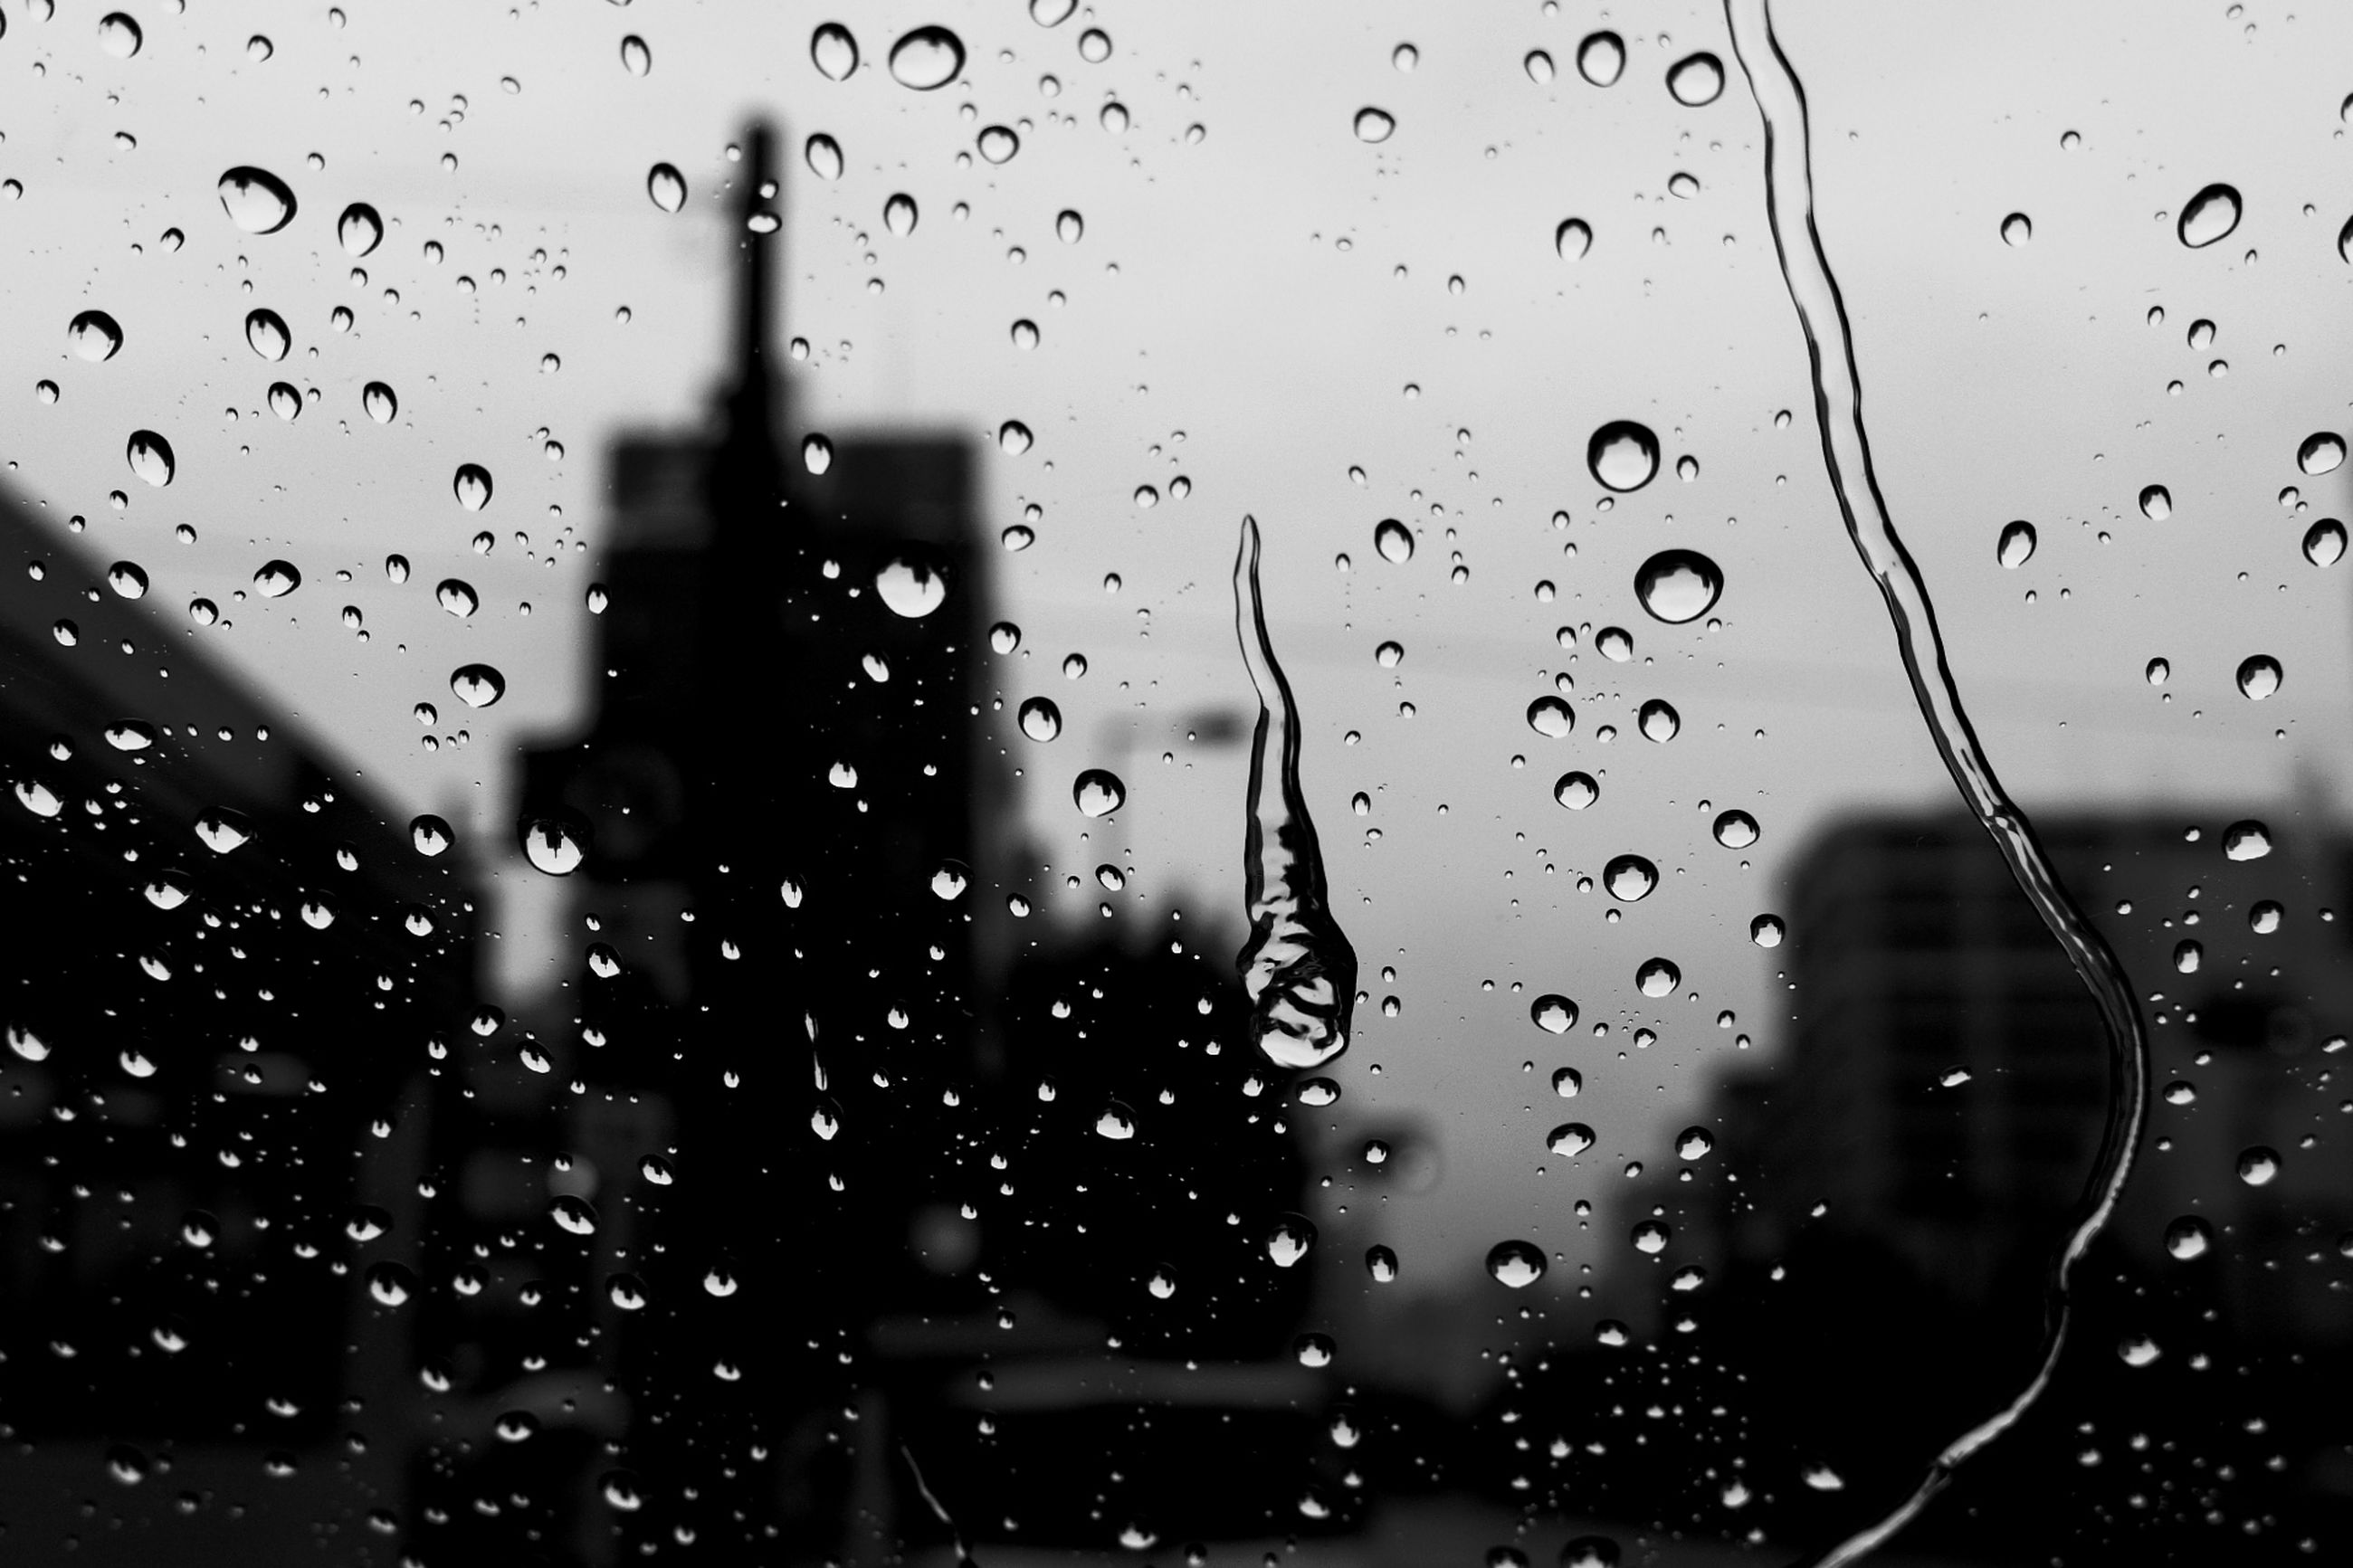 drop, wet, window, rain, transparent, indoors, glass - material, raindrop, water, weather, season, focus on foreground, full frame, car, backgrounds, transportation, glass, monsoon, close-up, droplet